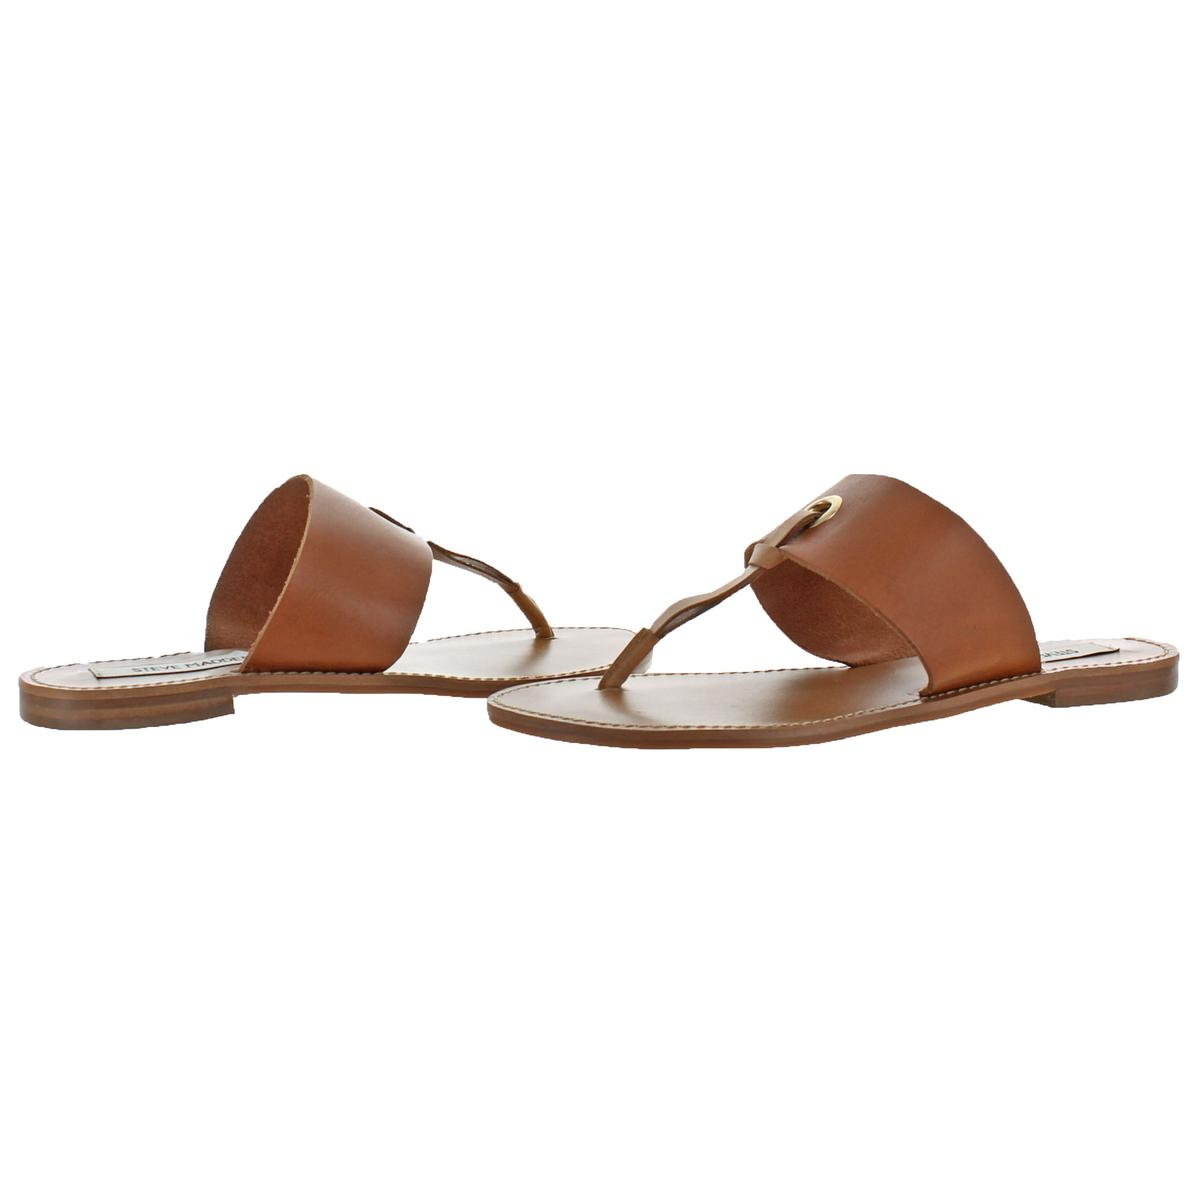 4116d89e242d Details about Steve Madden Women s Ringer Leather Casual Thong Sandals  Shoes Tan Size 6